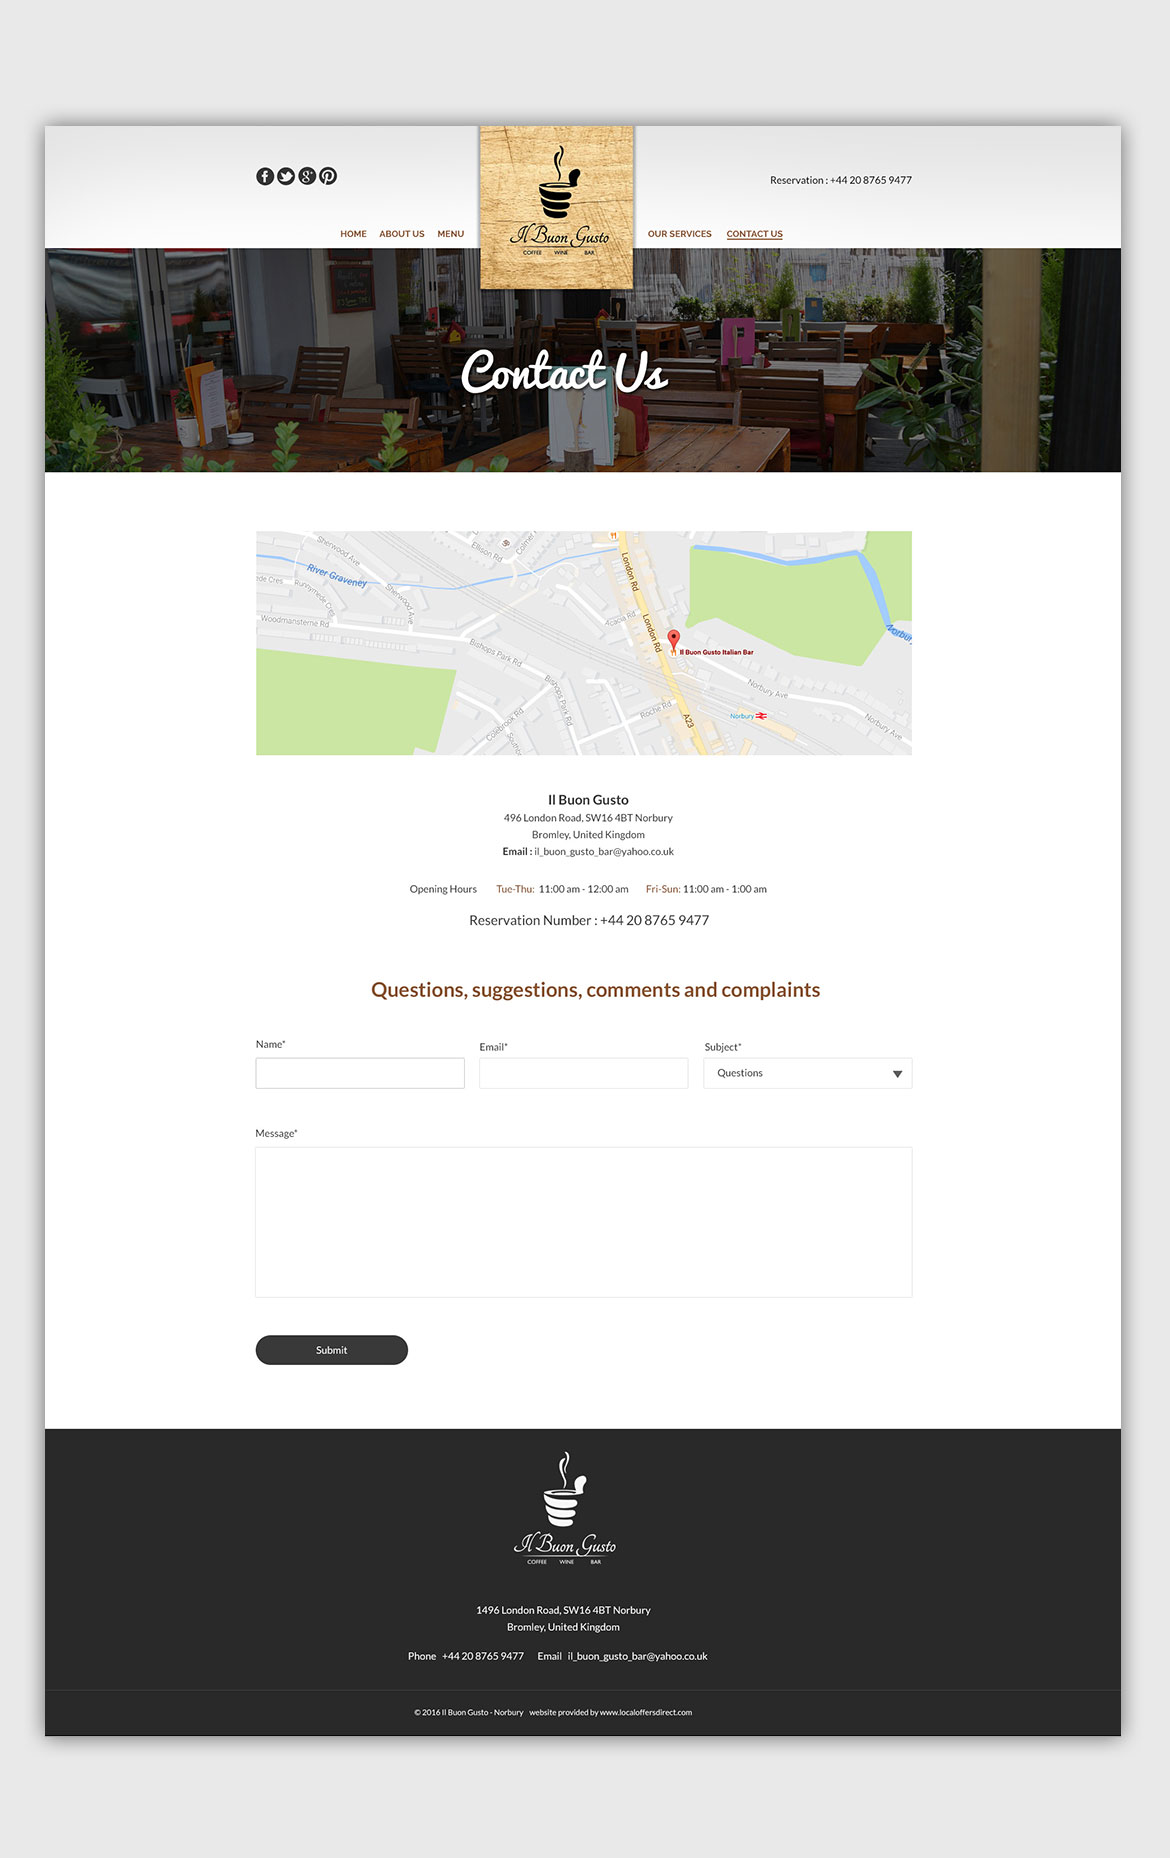 uk-restaurant-website-design-and-development-contact